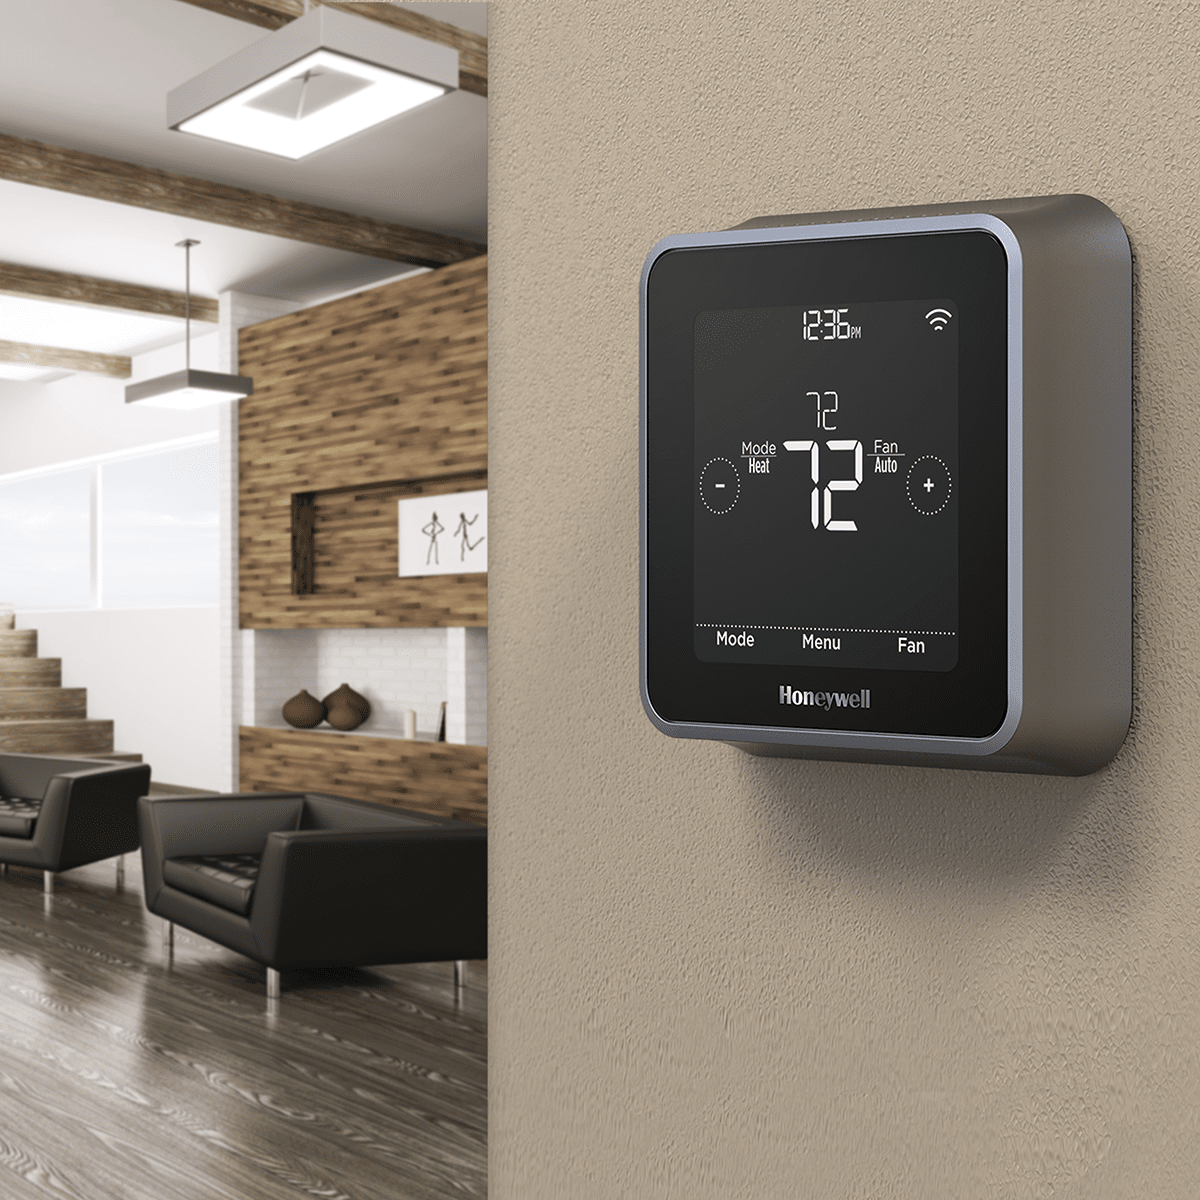 Honeywell Lyric T5 Wi-Fi Thermostat (RCHT8610WF)